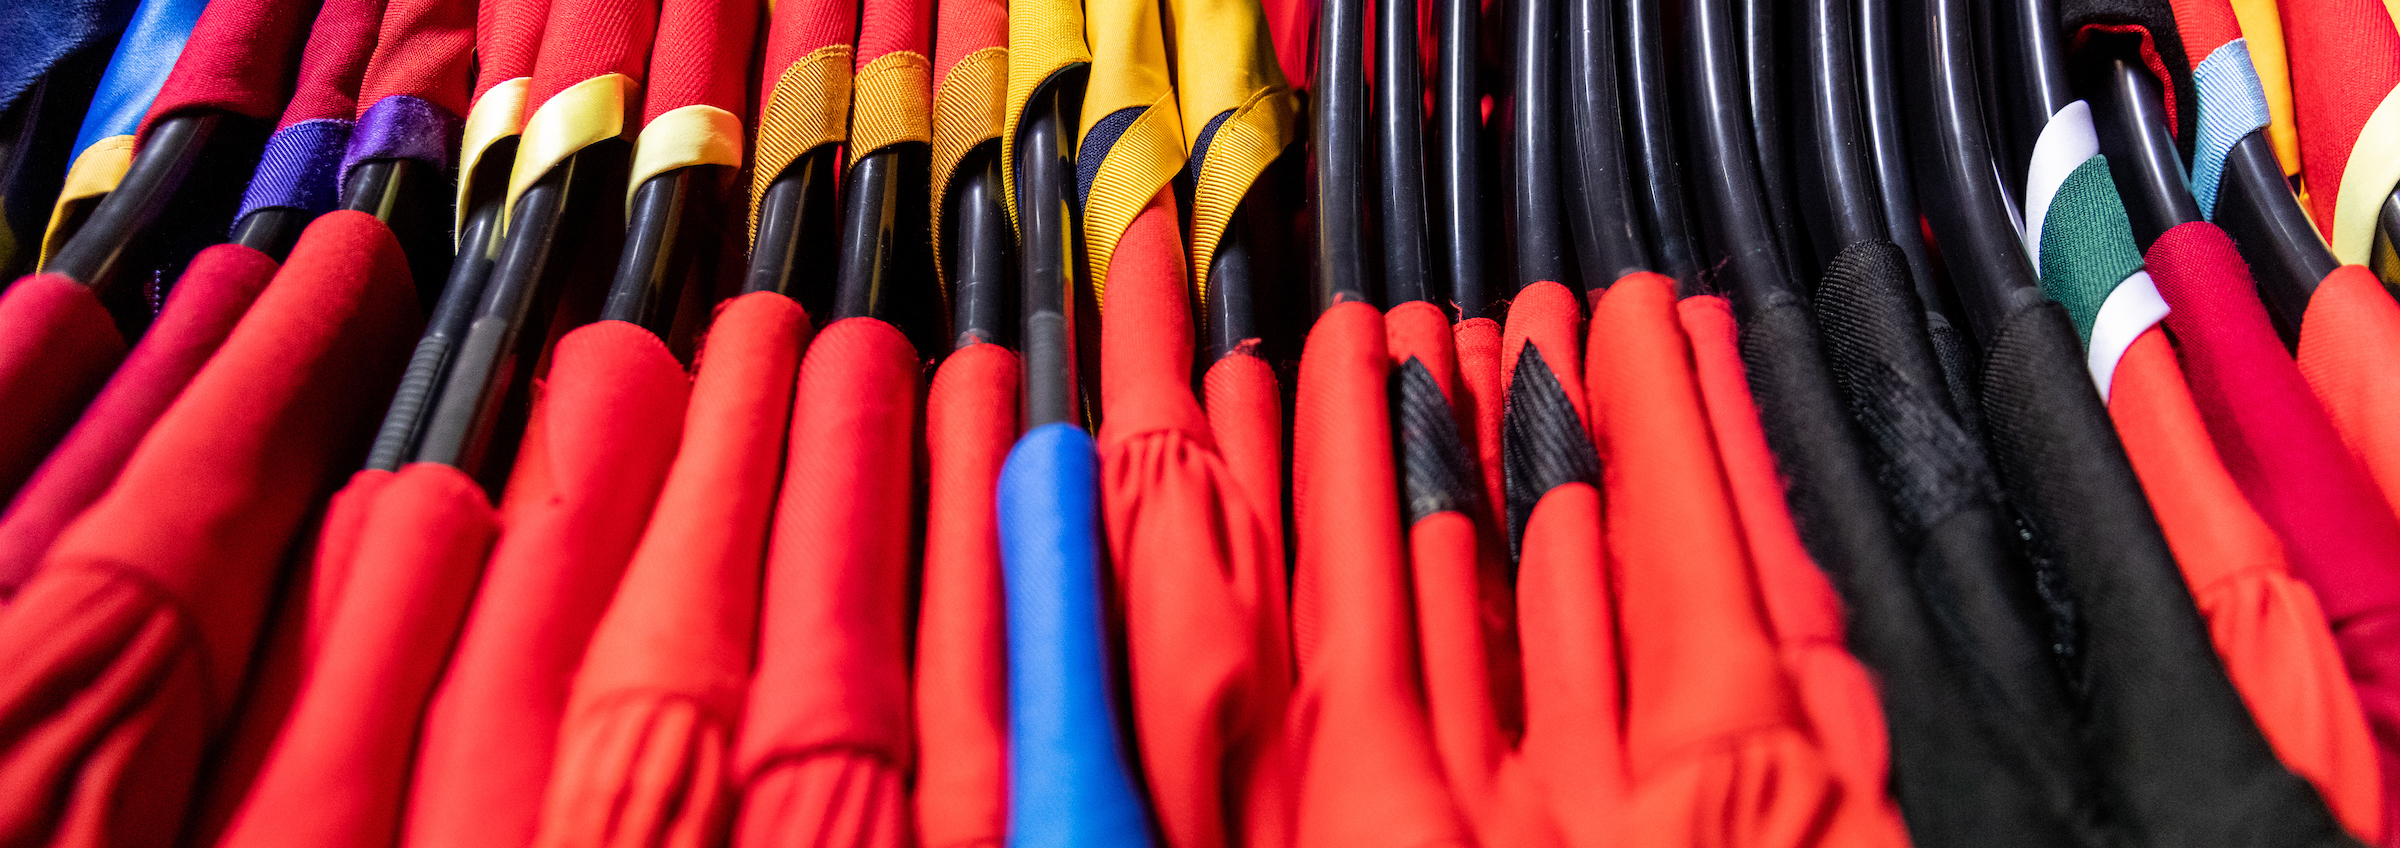 A line of doctoral robes for conferring, hanging up on black hanges